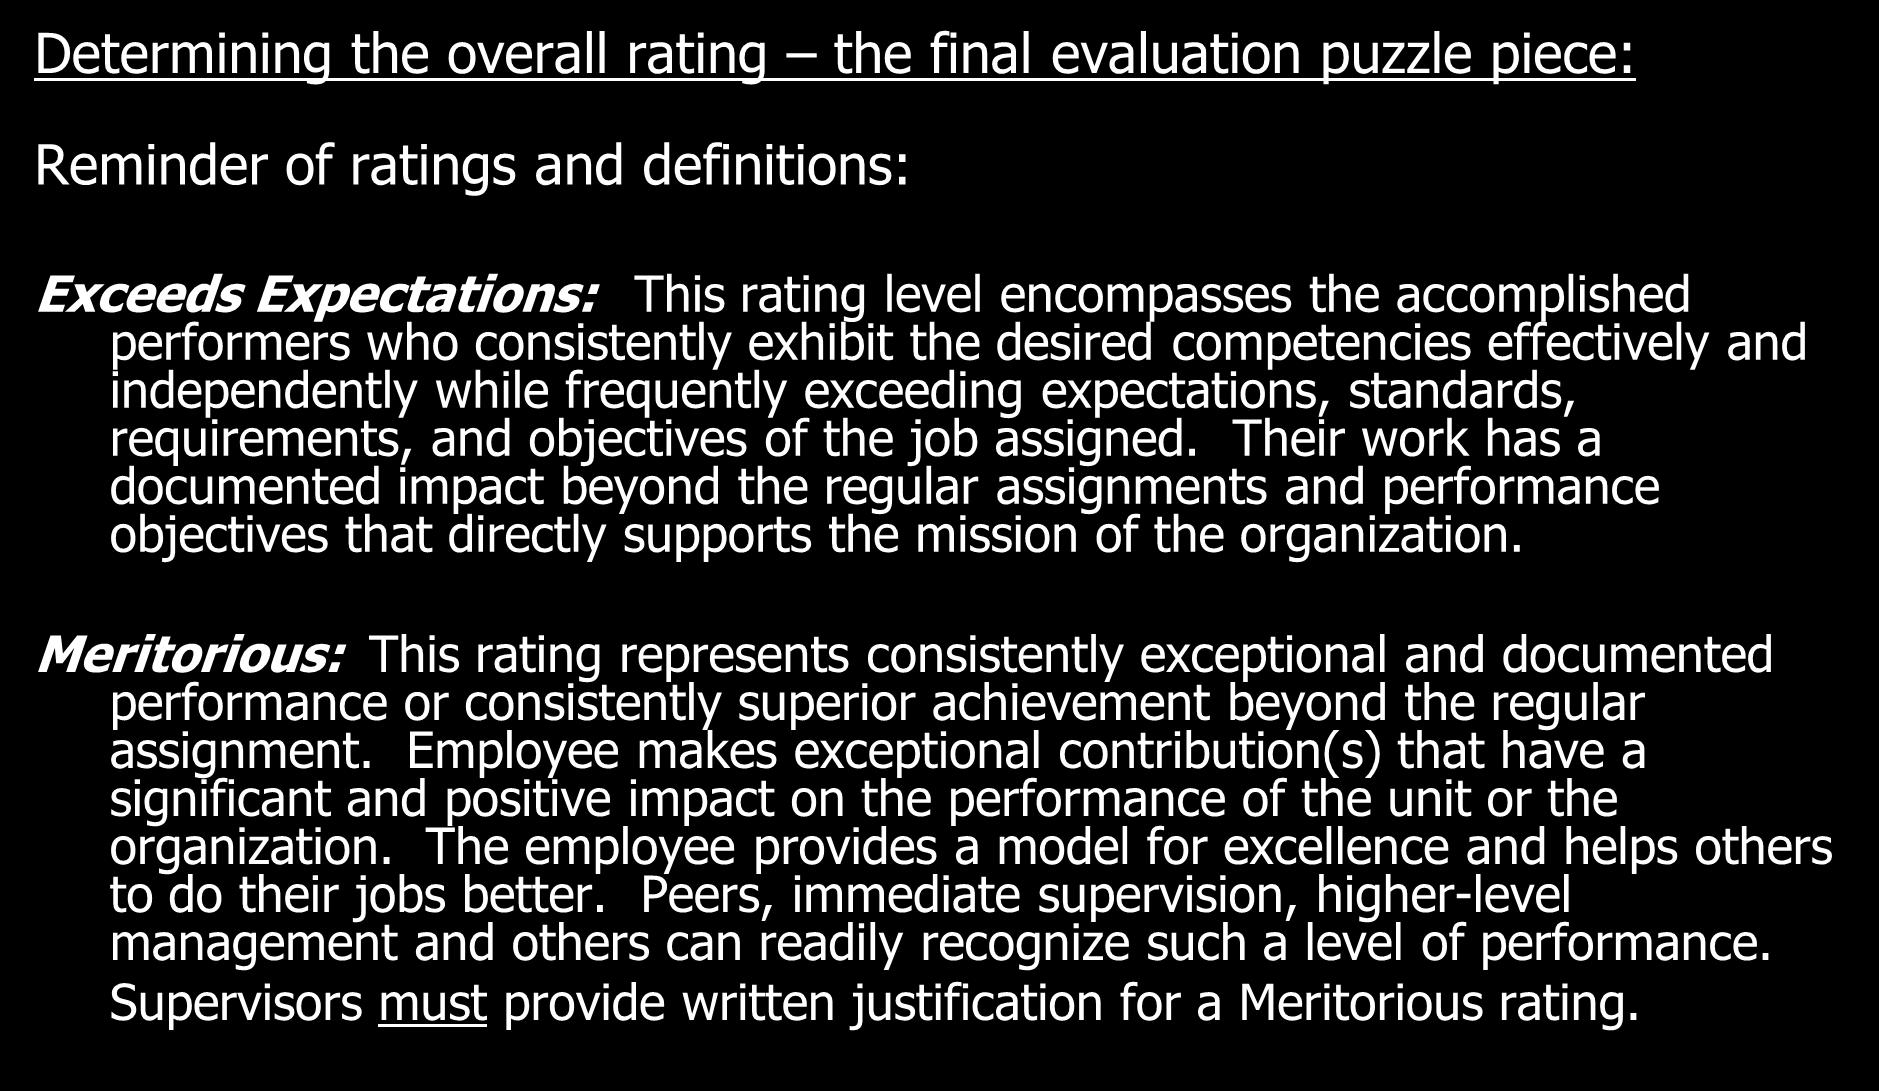 Determining the overall rating the final evaluation puzzle piece: Reminder of ratings and definitions: Exceeds Expectations: This rating level encompasses the accomplished performers who consistently